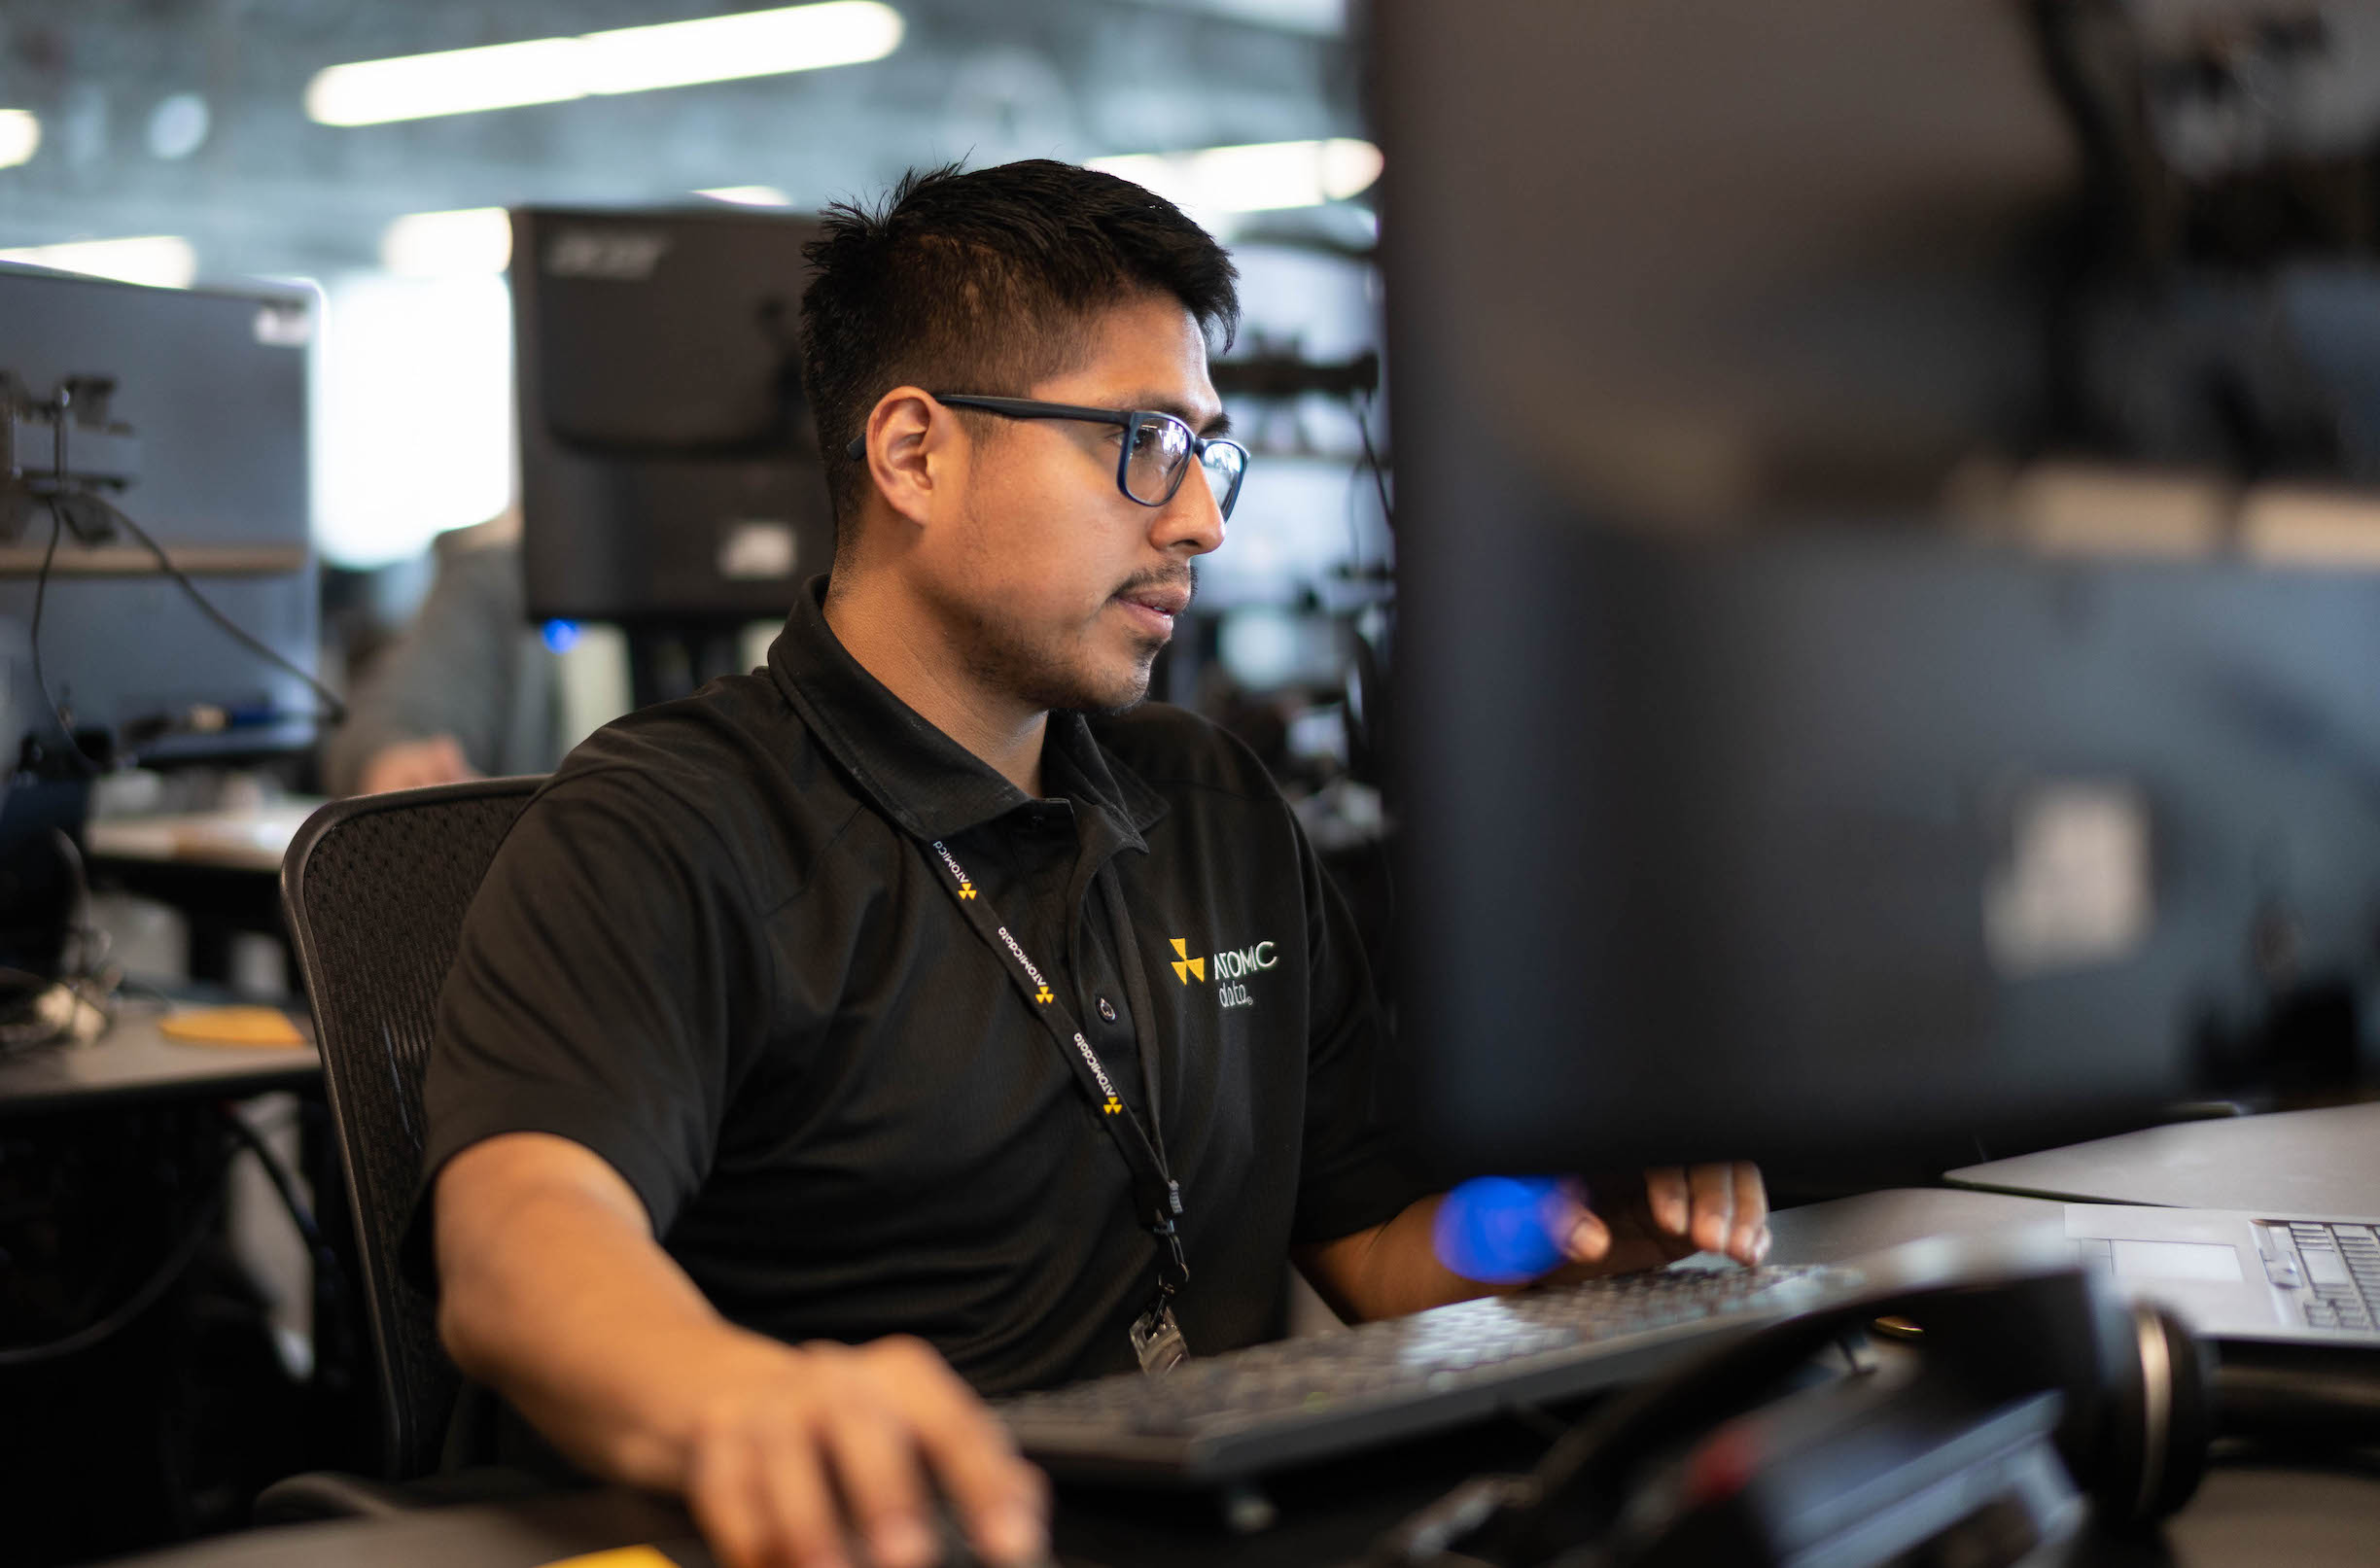 Atomic Data Technician on Computer